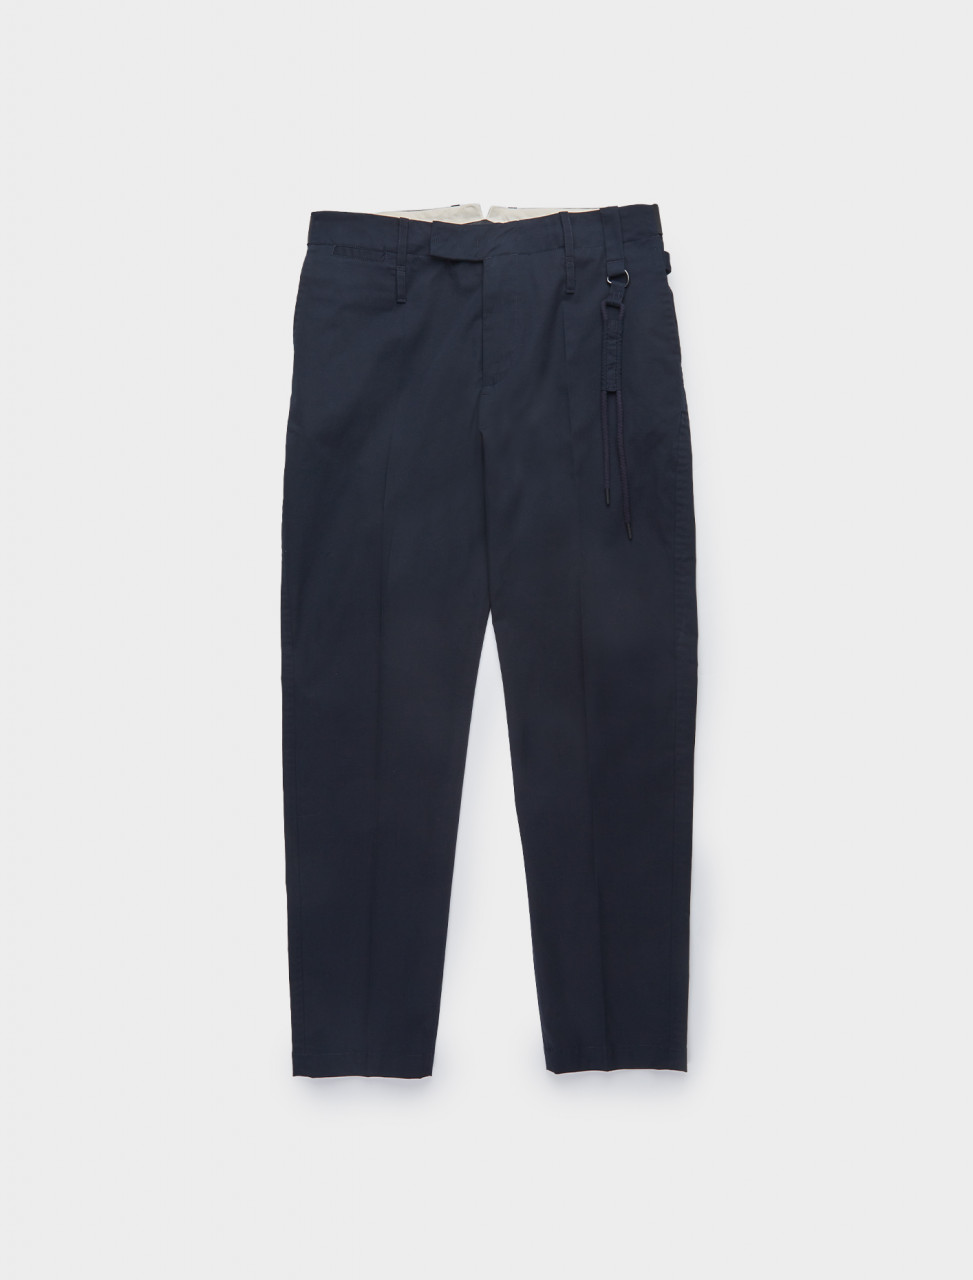 196-CGAW20CWOTRS0 CRAIG GREEN SILM UNIFORM TROUSERS NAVY FRONT